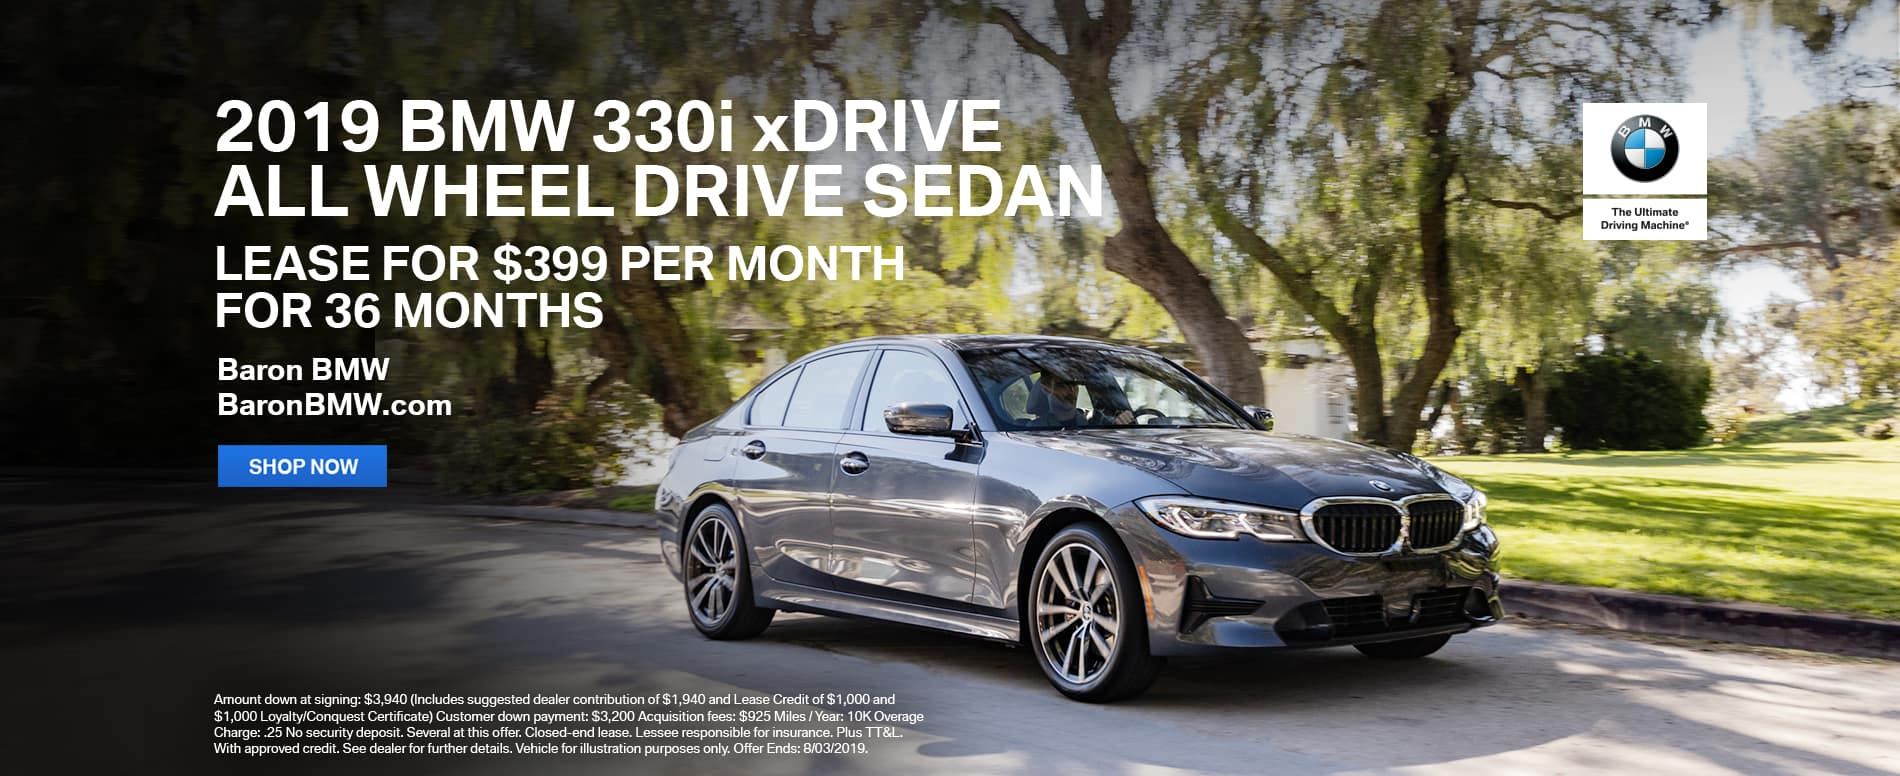 lease-2019-bmw-330i-xdrive-awd-sedan-baron